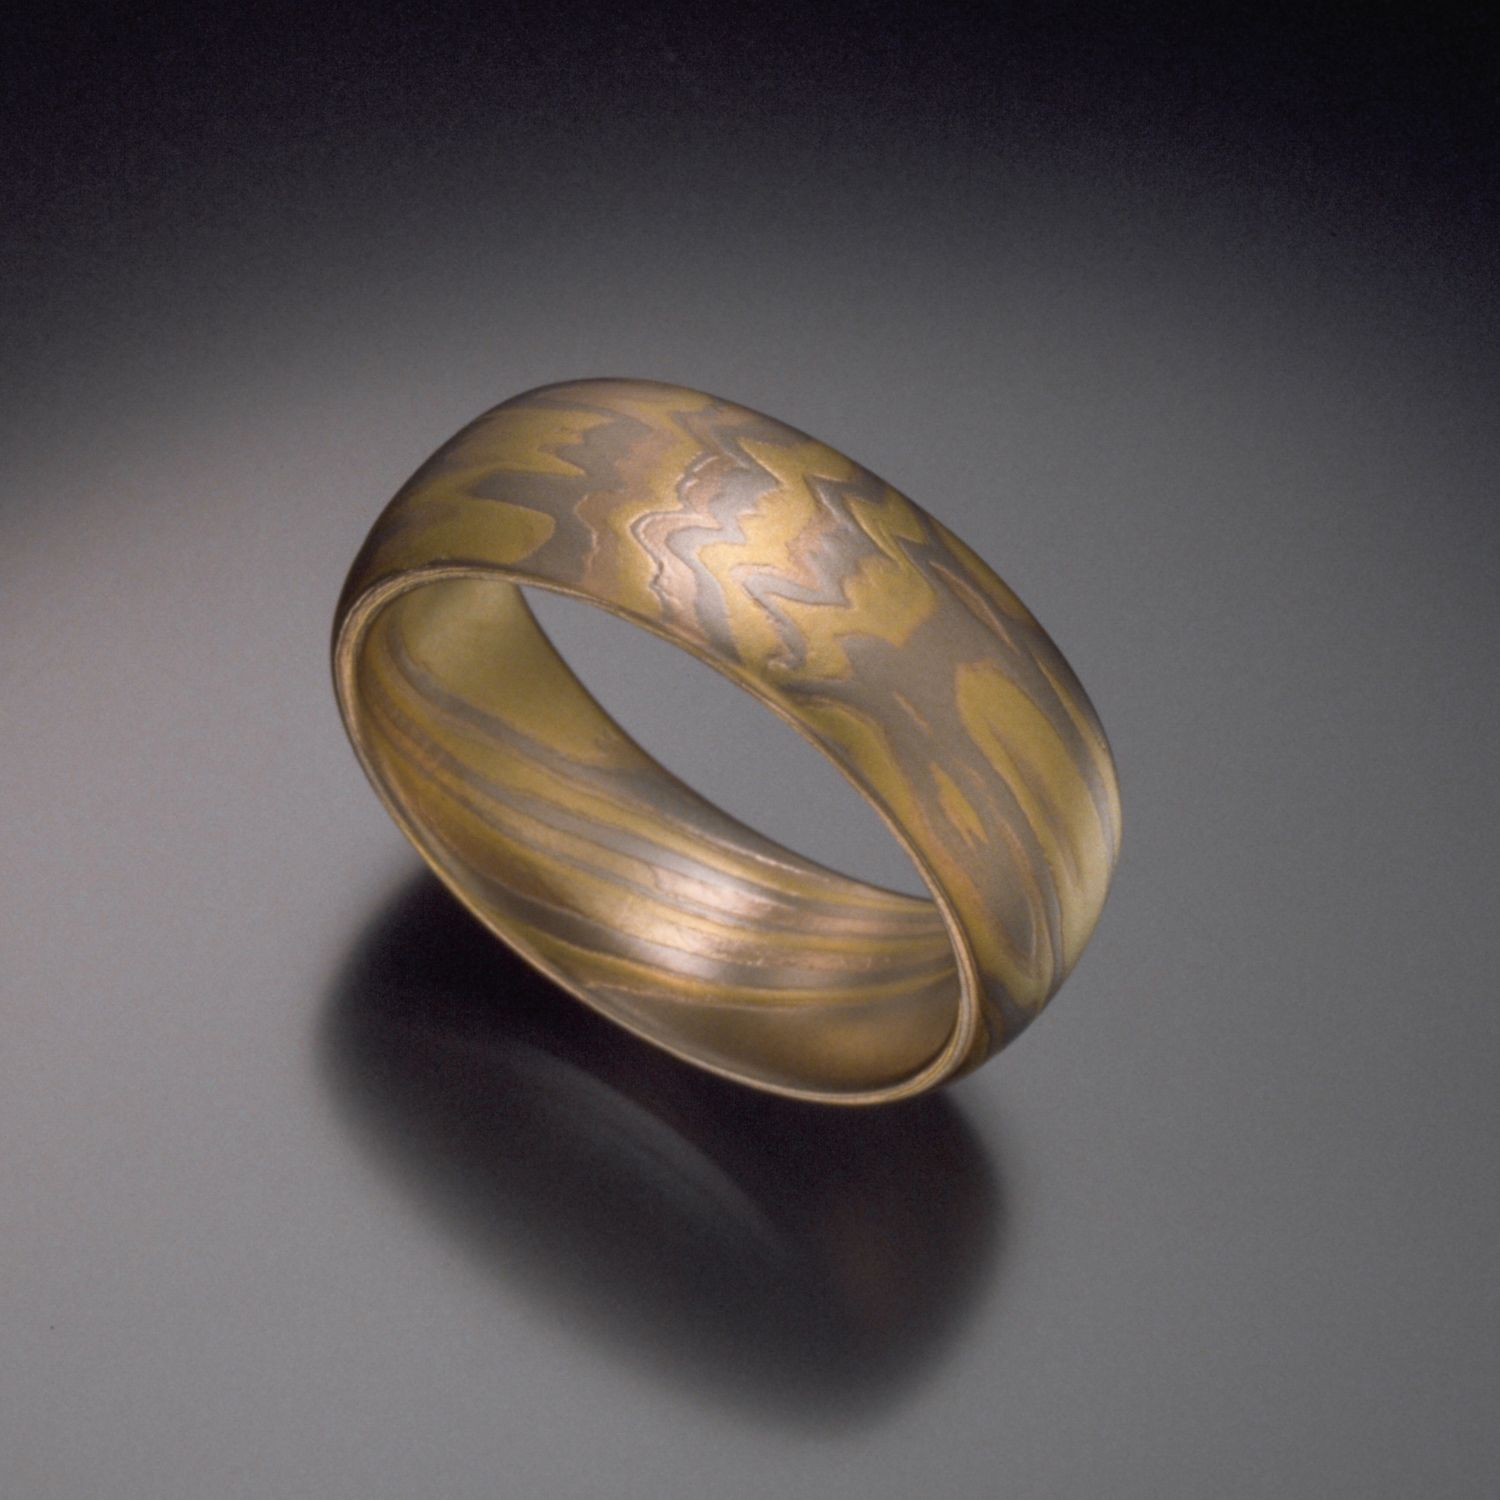 triple band wedding ring Women s 18K Yellow White and Rose Gold Mokume Wedding Band Hand Made by Steven Jacob